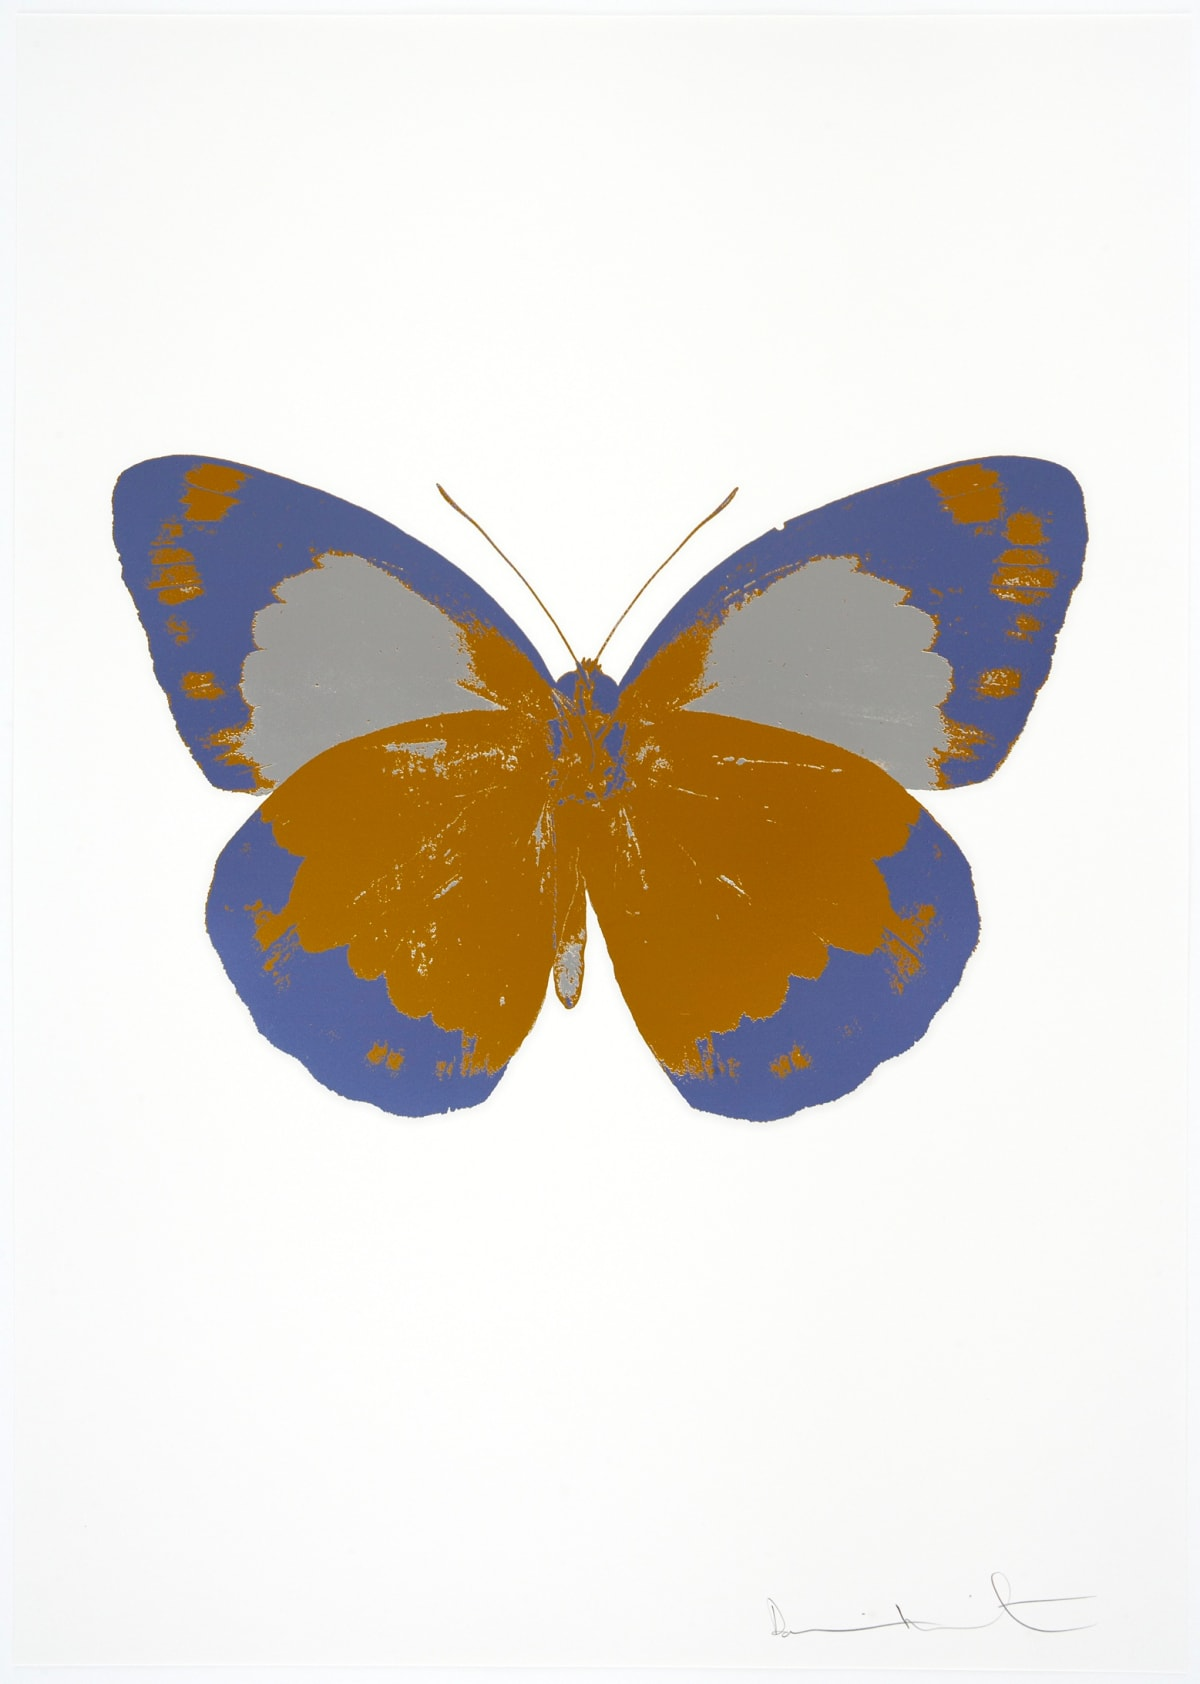 Damien Hirst The Souls II - Paradise Copper/Cornflower Blue/Silver Gloss, 2010 3 colour foil block on 300gsm Arches 88 archival paper. Signed and numbered. Published by Paul Stolper and Other Criteria 72 x 51cm OC7864 / 658-47 Edition of 15